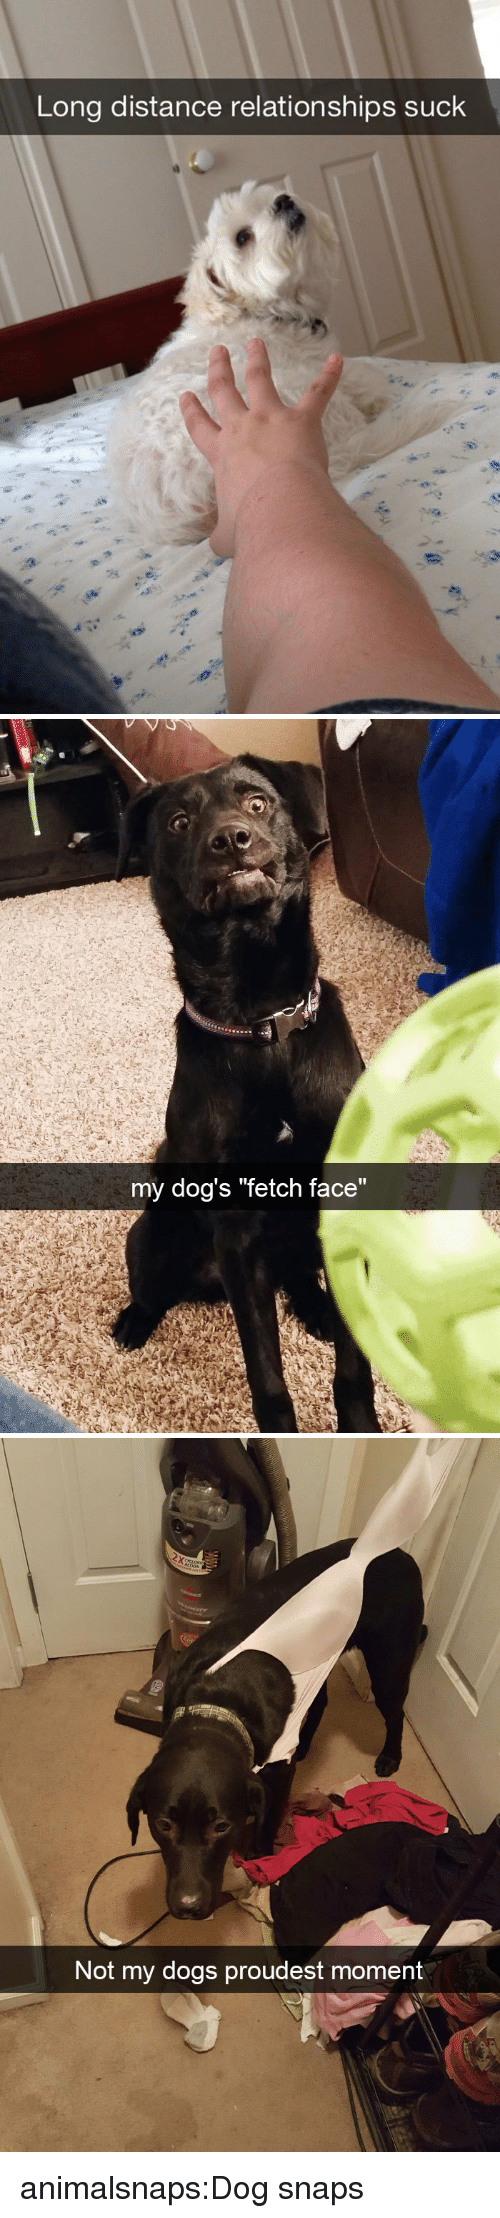 "fetch: Long distance relationships suck   my dog's ""fetch face""   Not my dogs proudest mom  ent animalsnaps:Dog snaps"